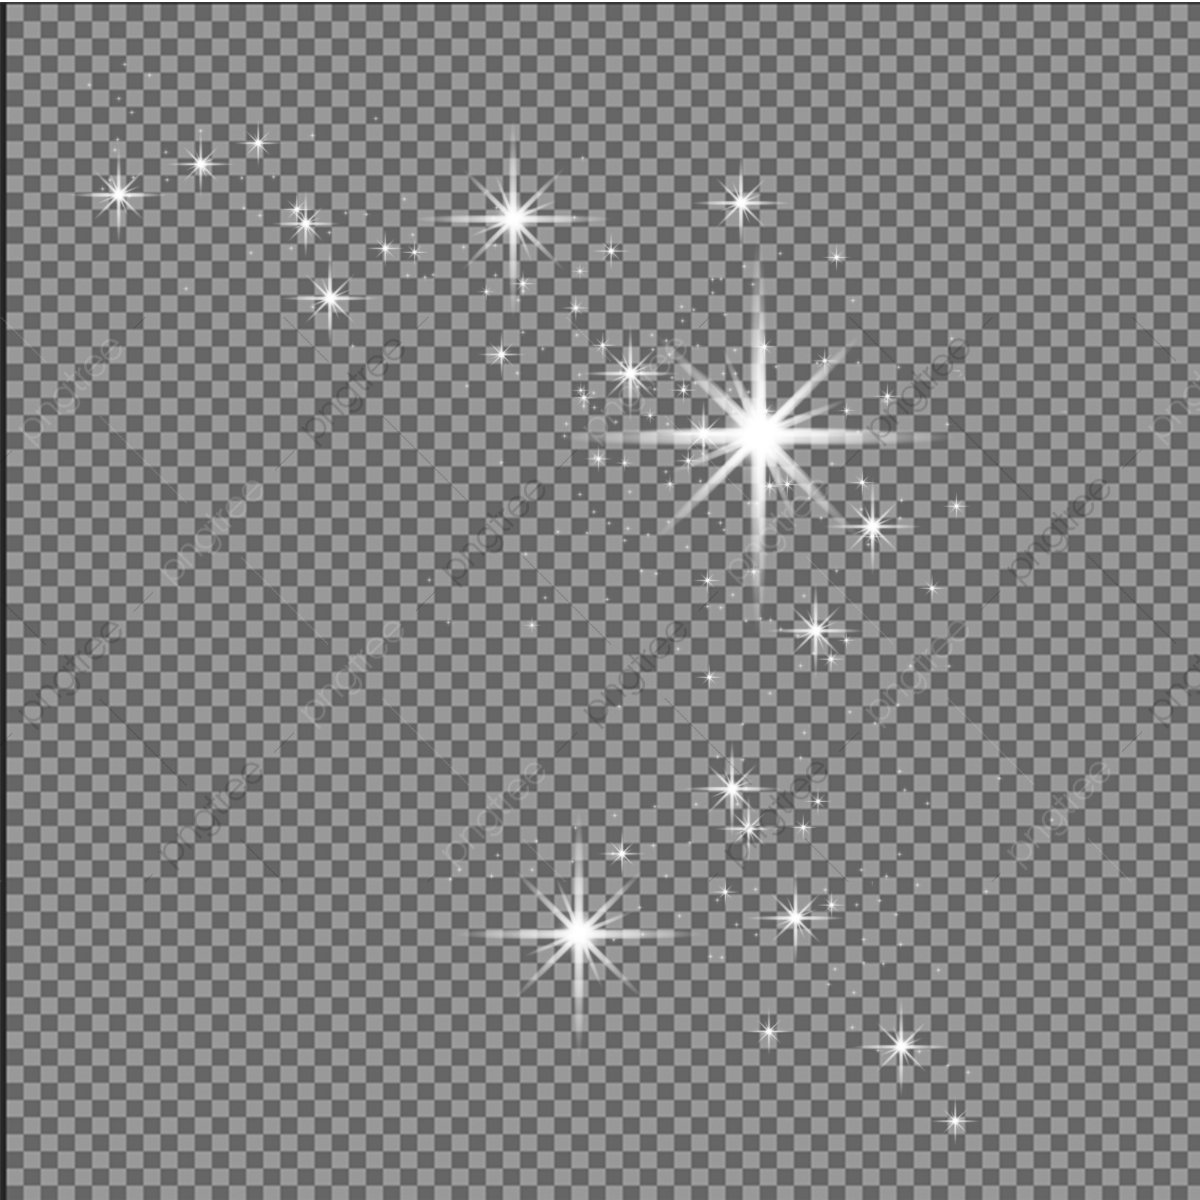 3d Star Logo: Sparkle Png, Vector, PSD, And Clipart With Transparent